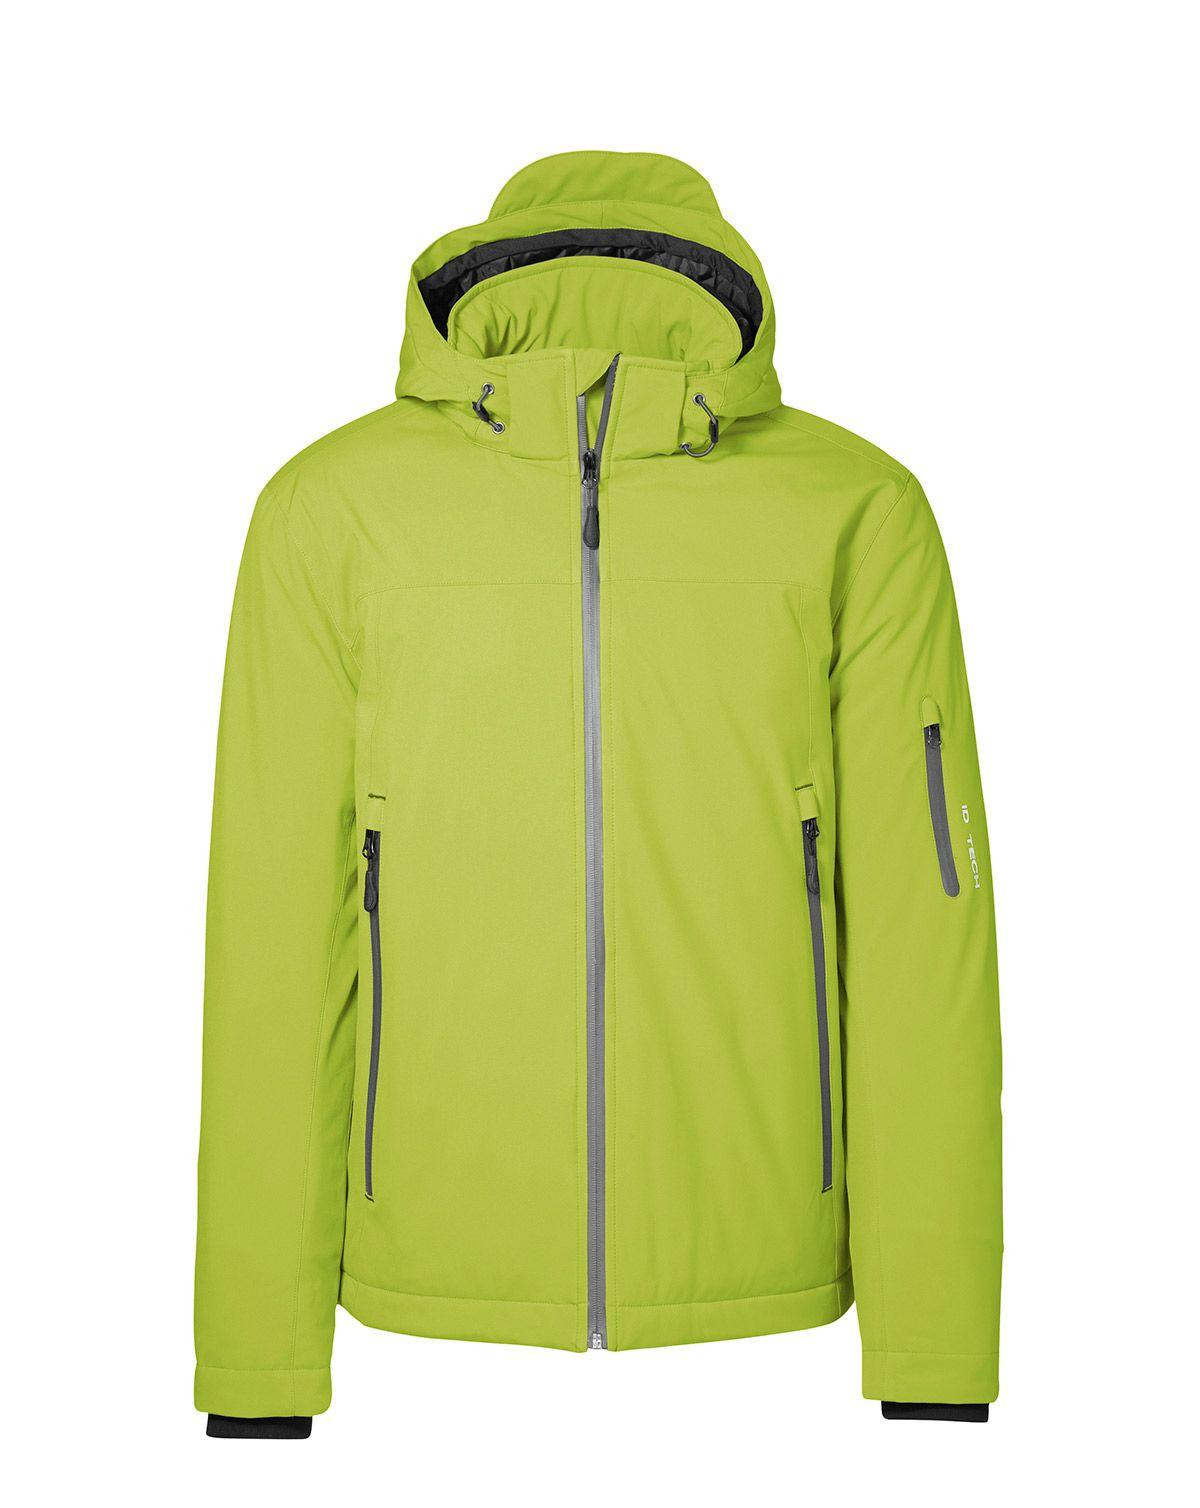 ID Vinter Softshell Jacka (Lime, XL)